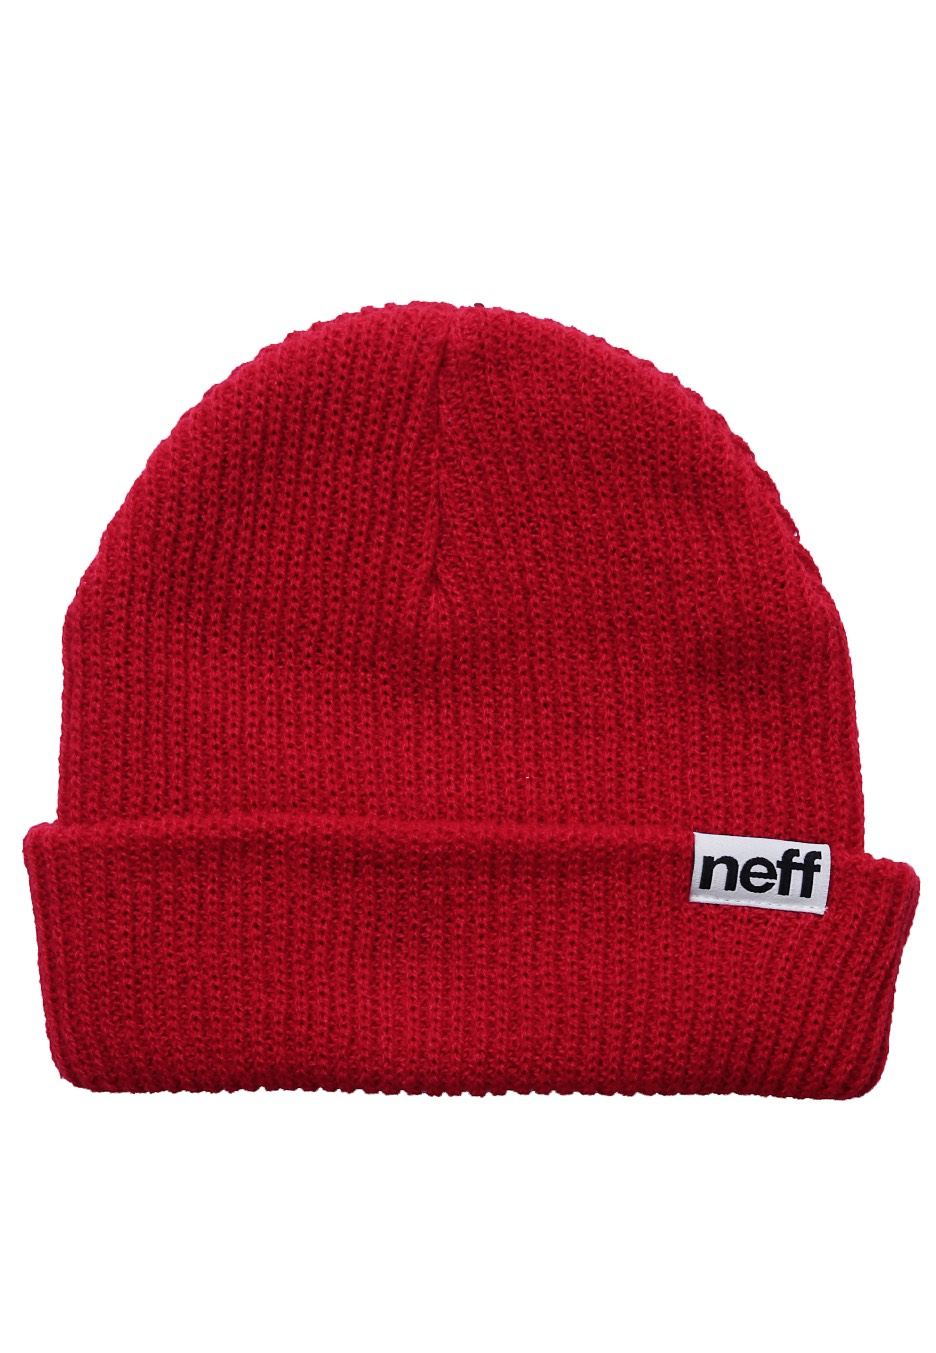 Neff - Fold Red - Beanie - Streetwear Shop - Impericon.com Worldwide cd8766f07fe